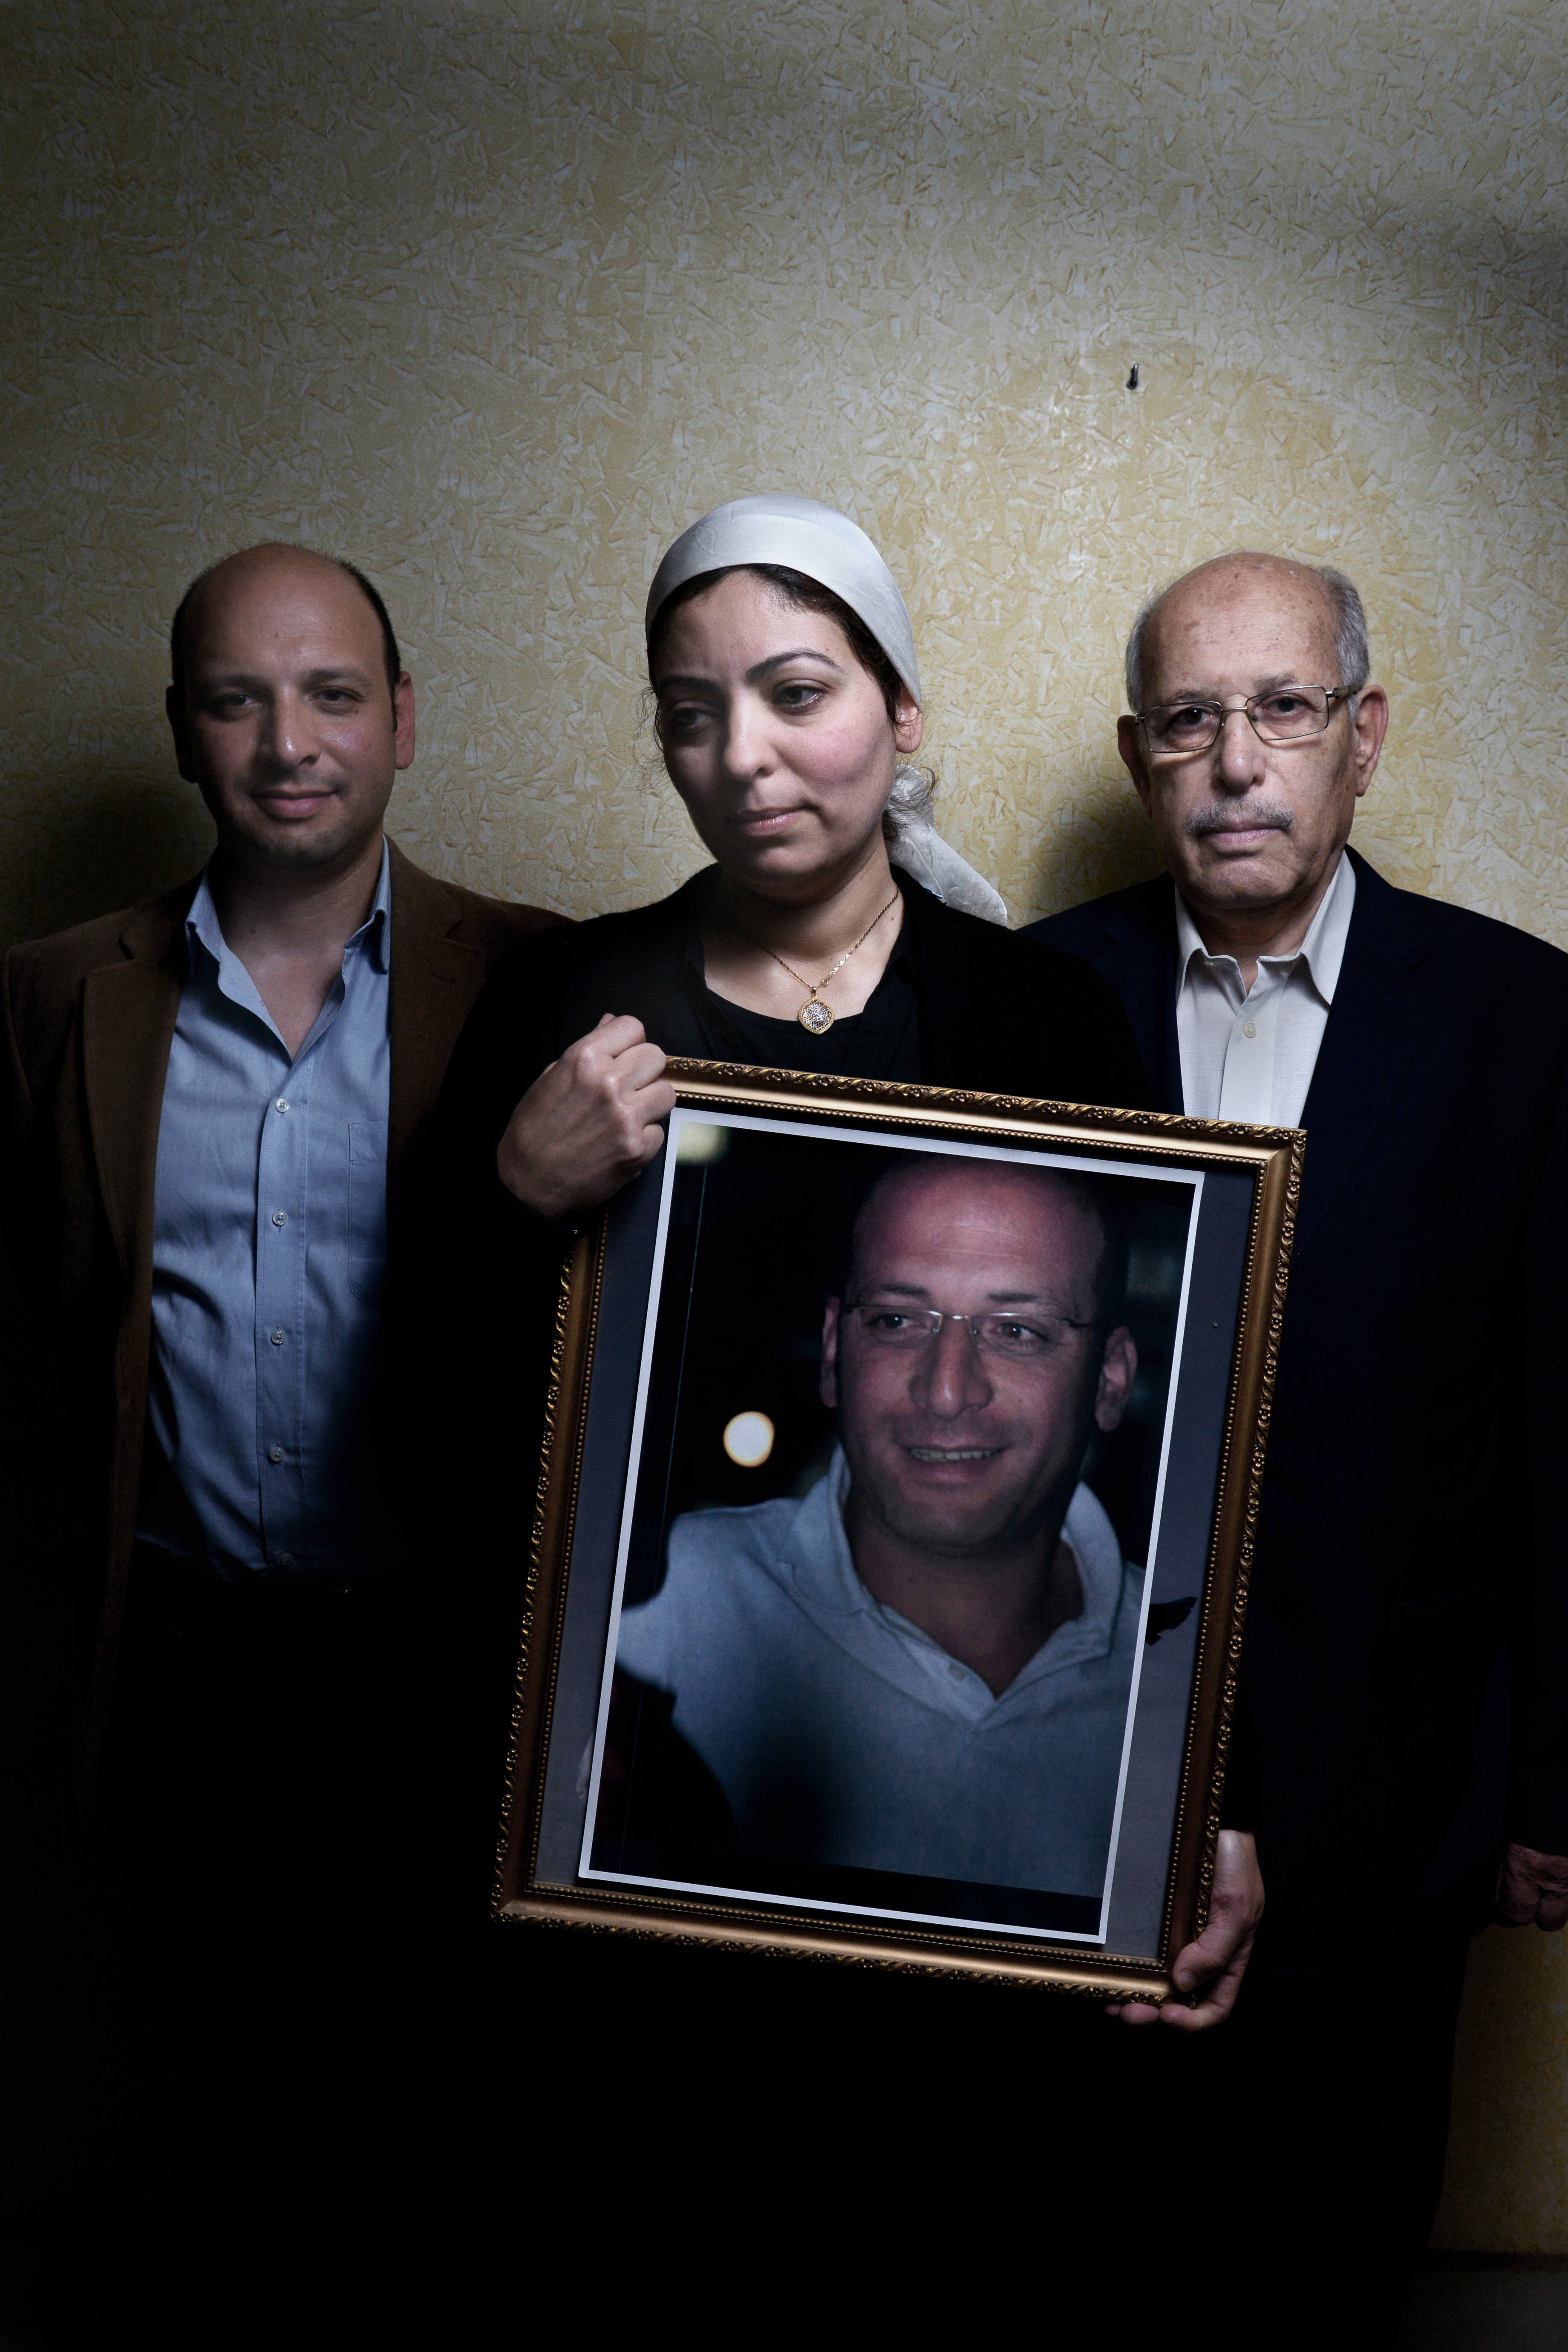 Hazem Helal, Eman Samy and Mohamed Helal, the brother, wife and father of passenger Ahmed Helal